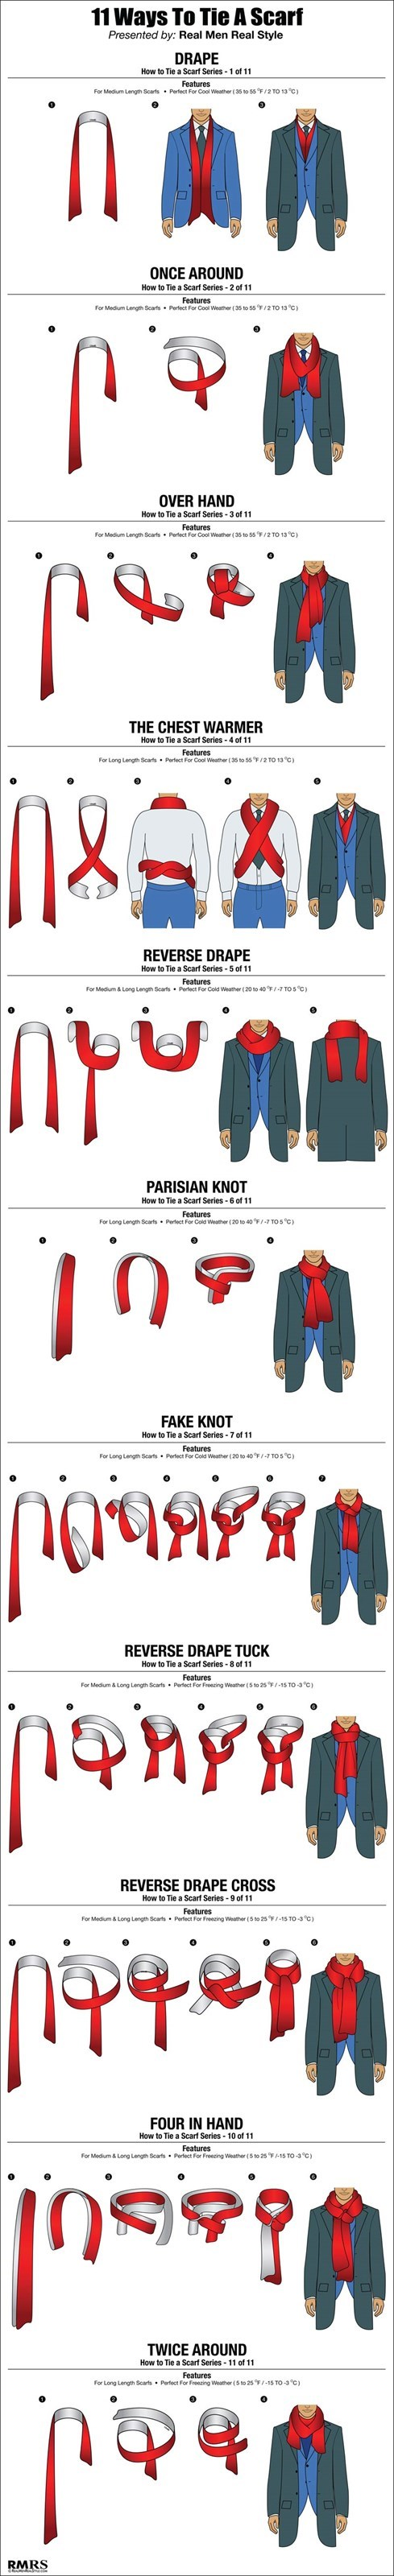 scarf,winter,infographic